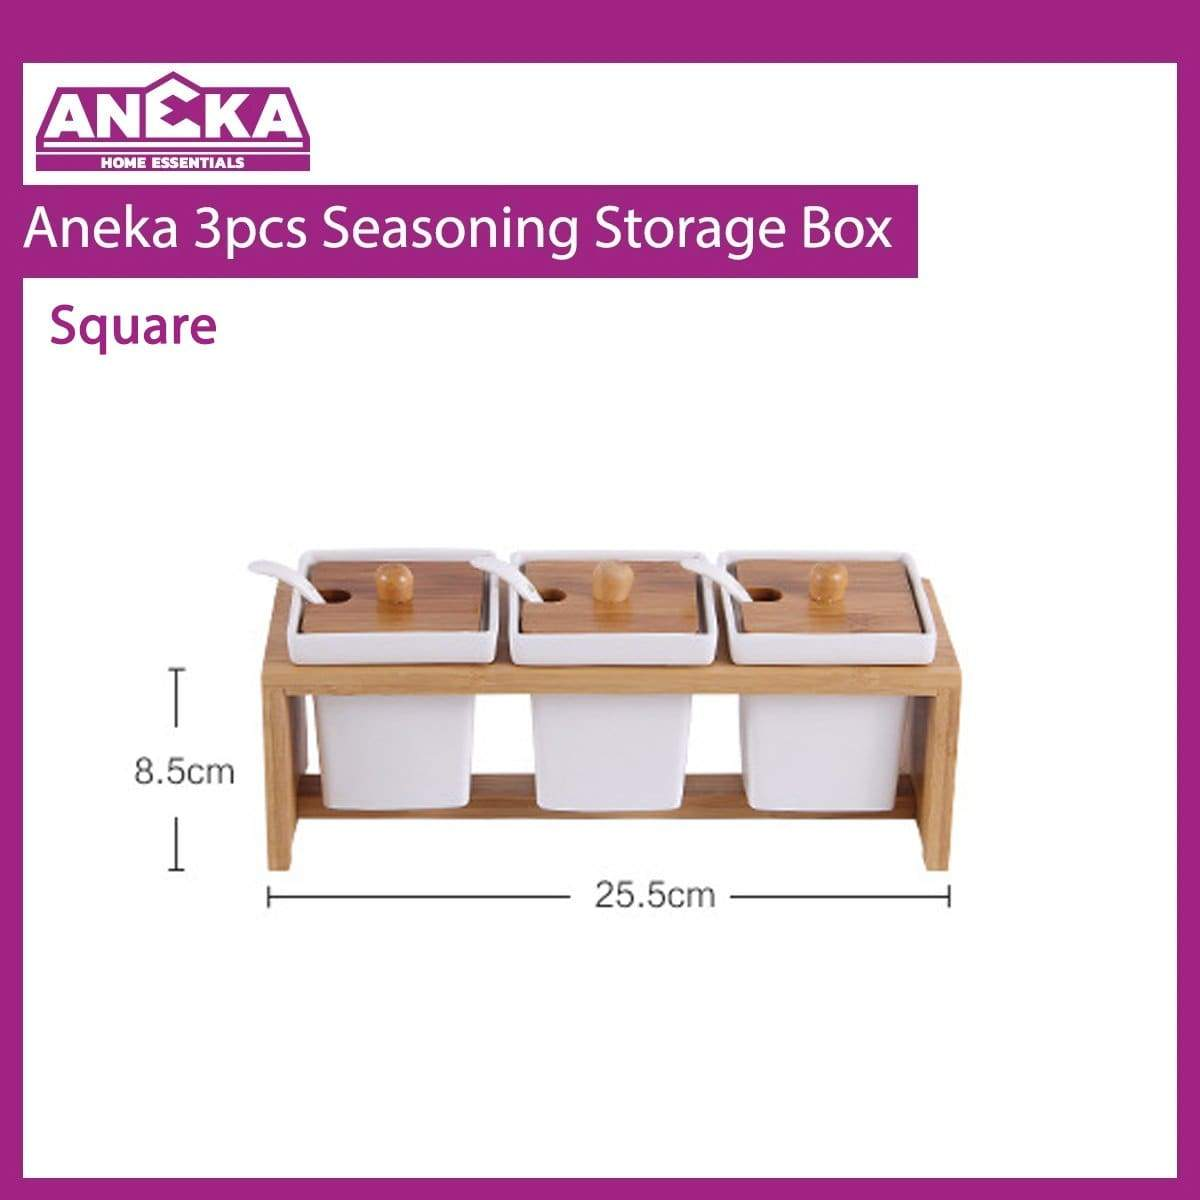 Aneka 3pcs Seasoning Storage Box - Square